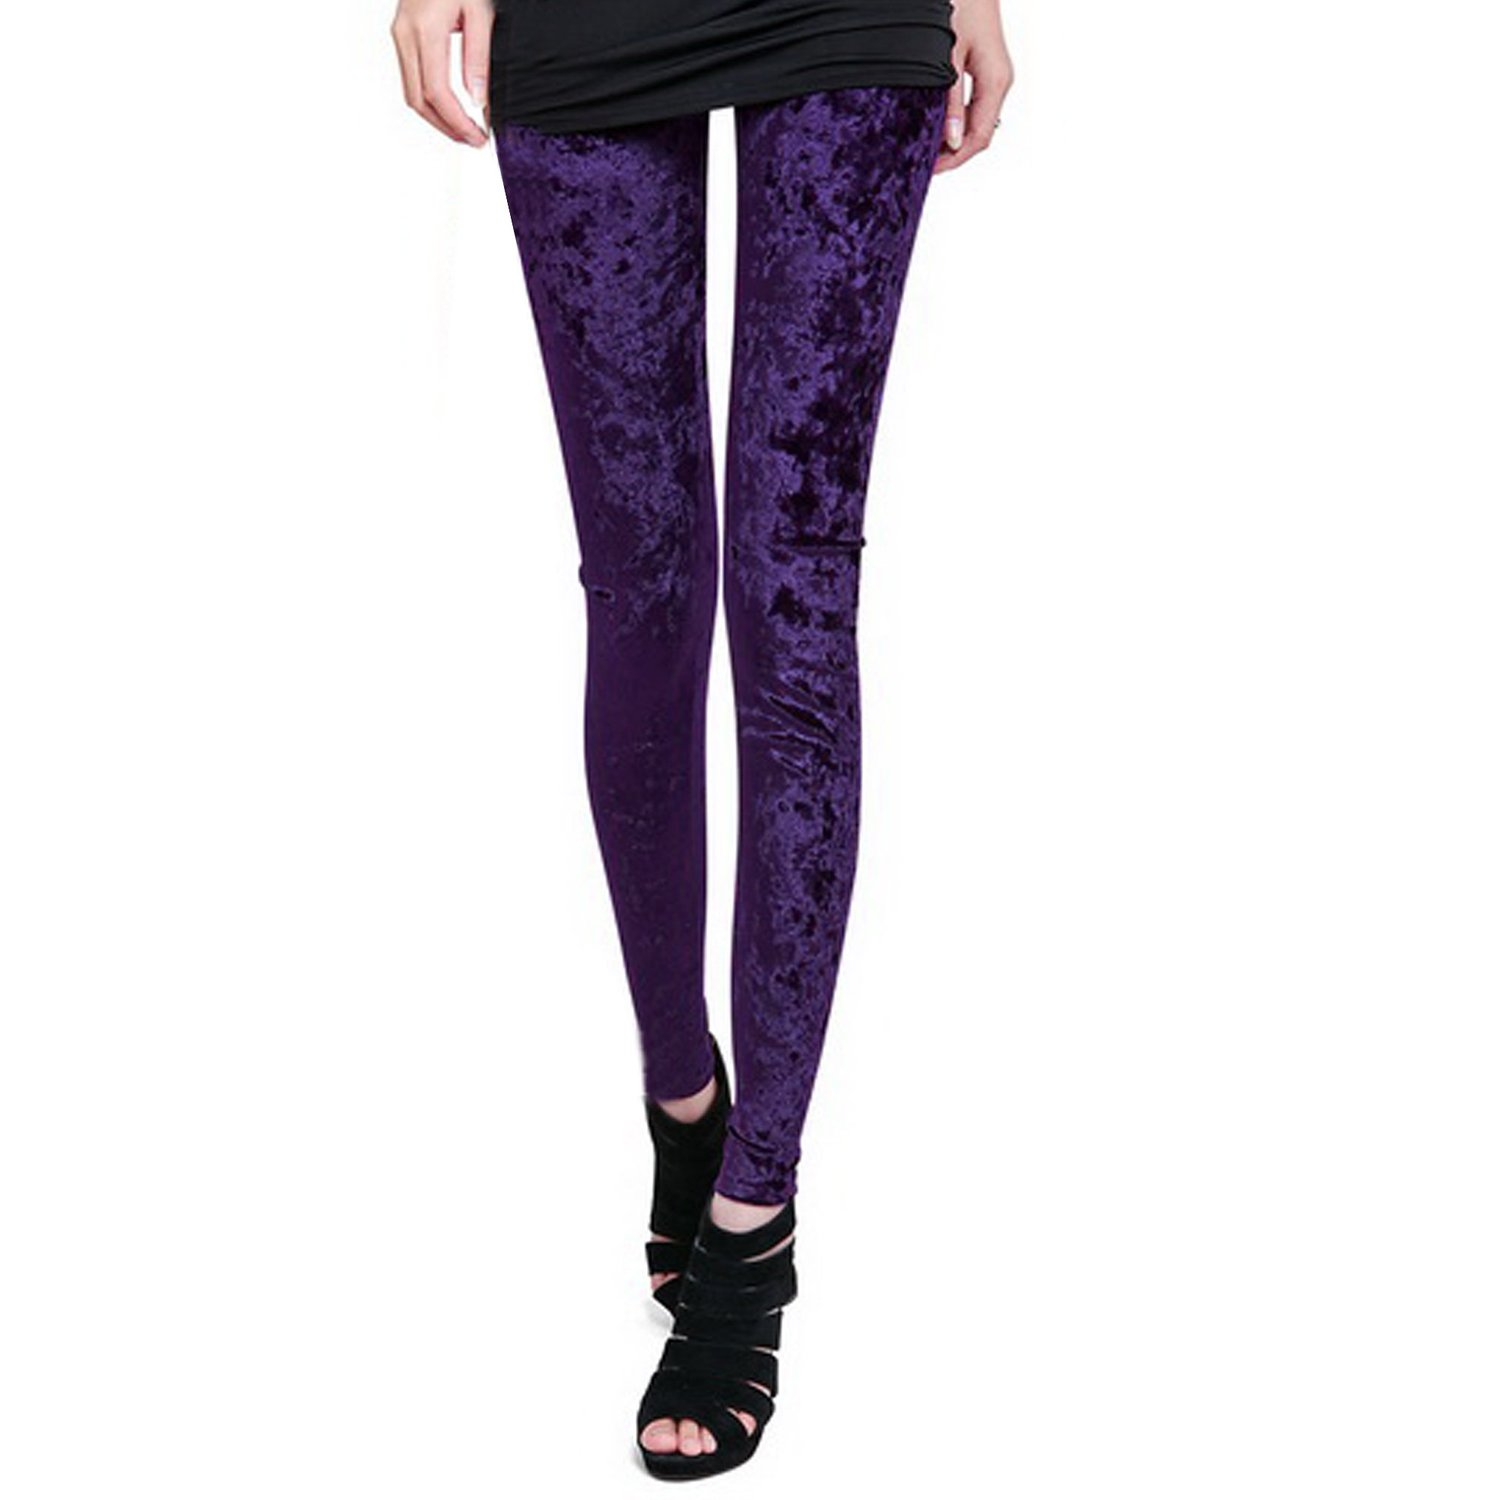 Zeagoo Women's Diamond Velvet Stretch Leggings Purple at Amazon Women's Clothing store: Leggings Pants